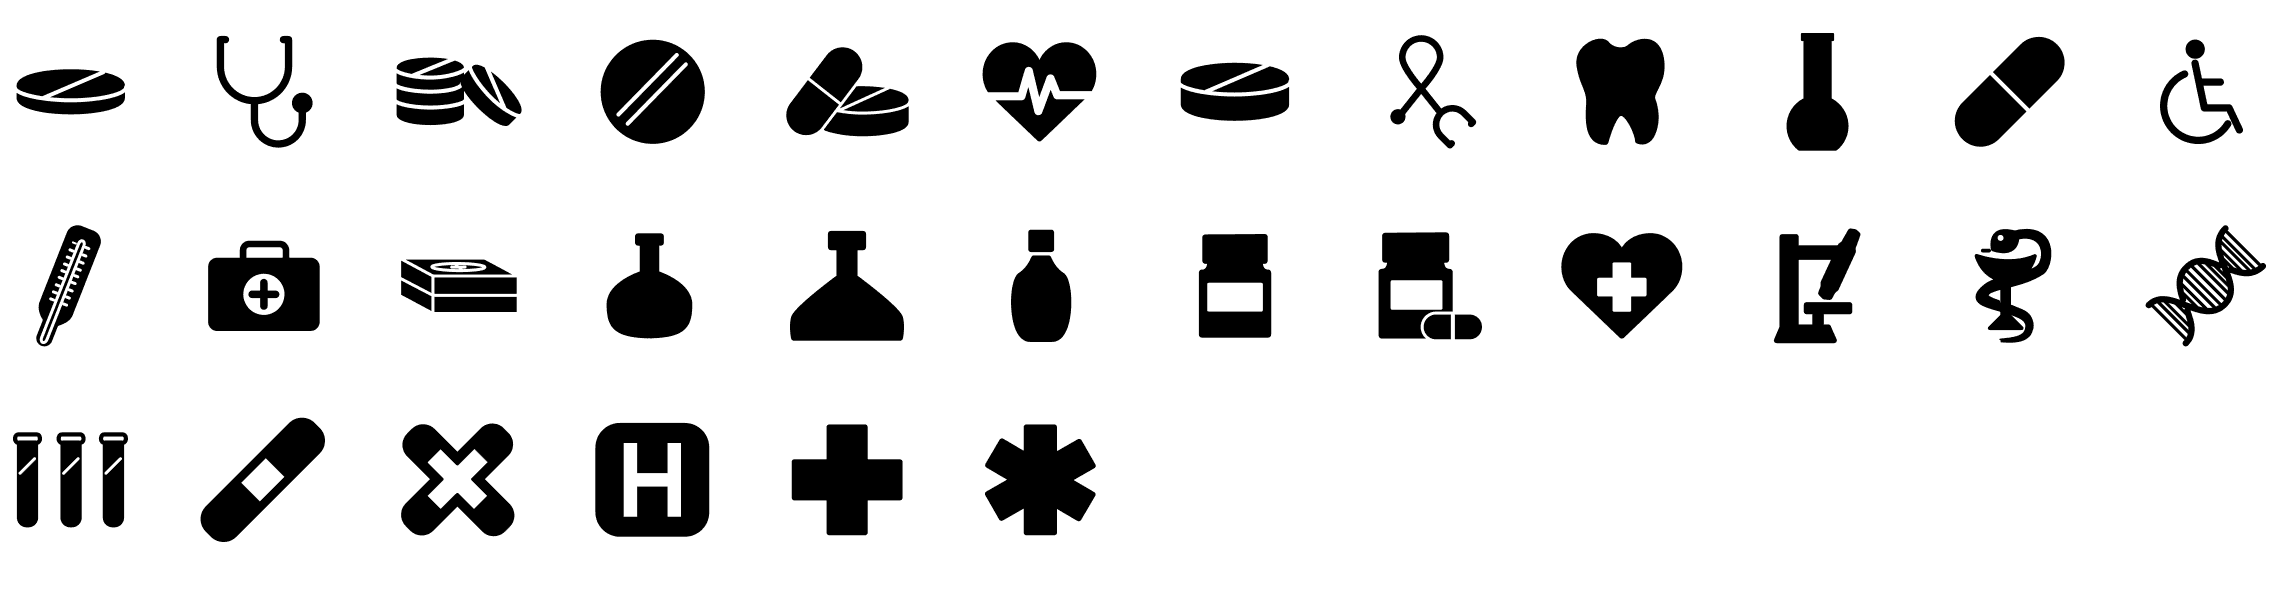 medical-glyph-icons-preview